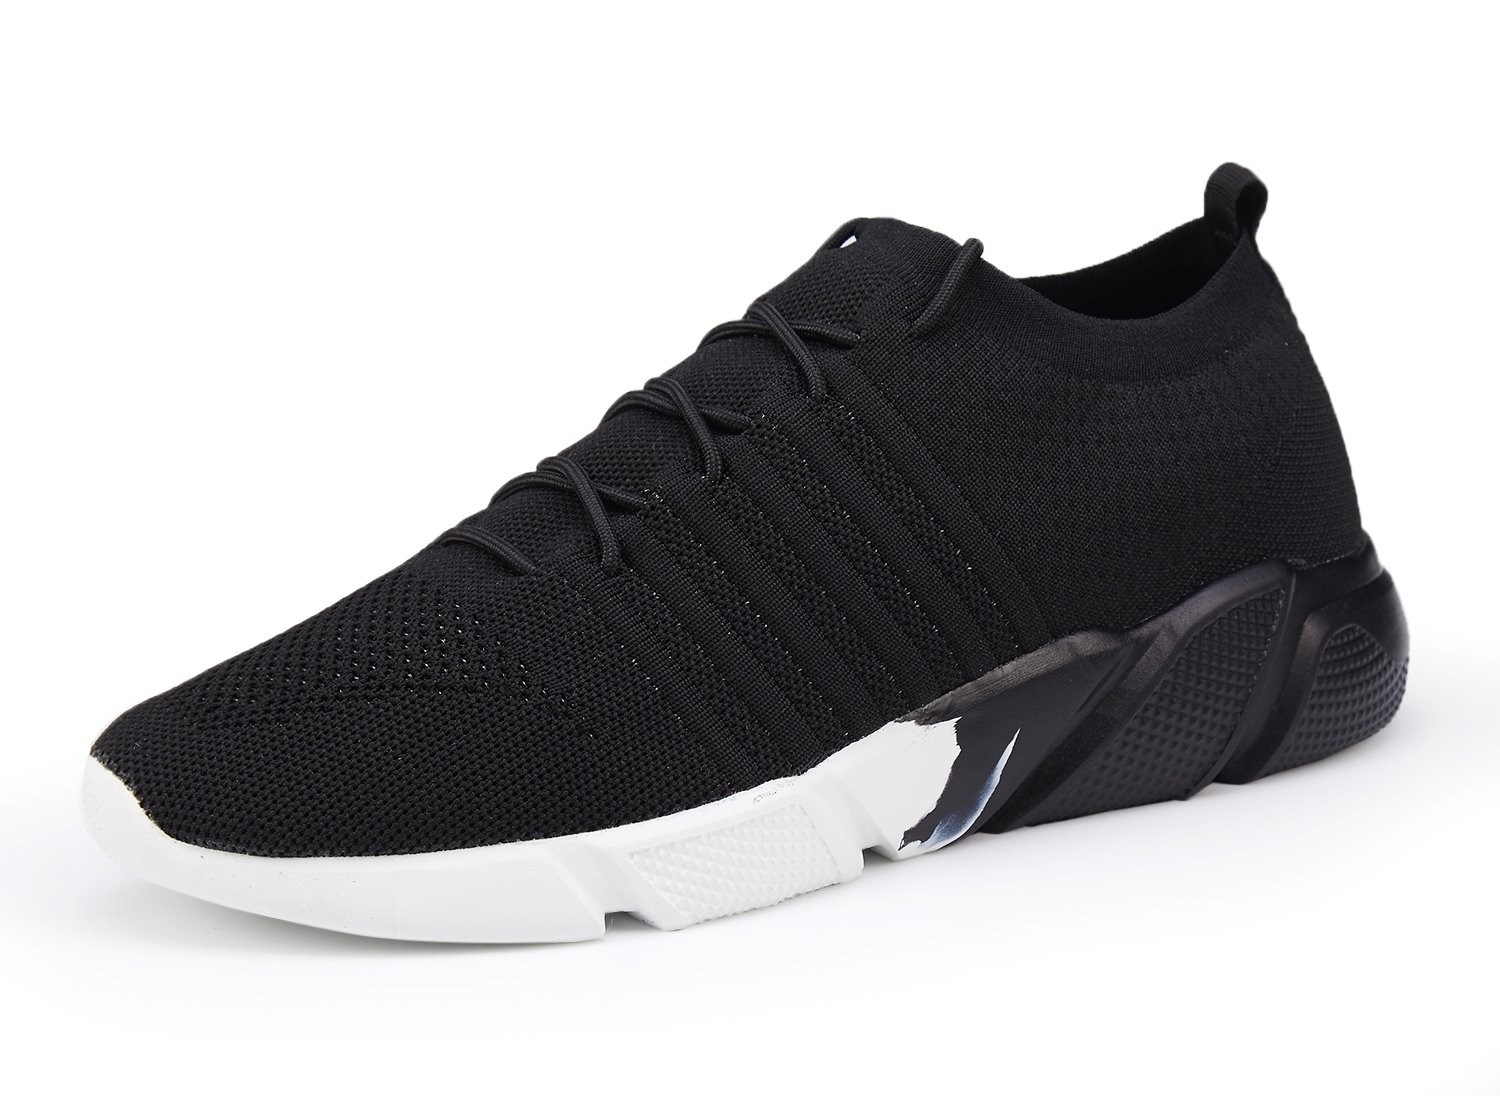 Men's Running Shoes Fashion Breathable Sneakers Mesh Soft Sole Casual Athletic Lightweight Walking Shoes Black White 42